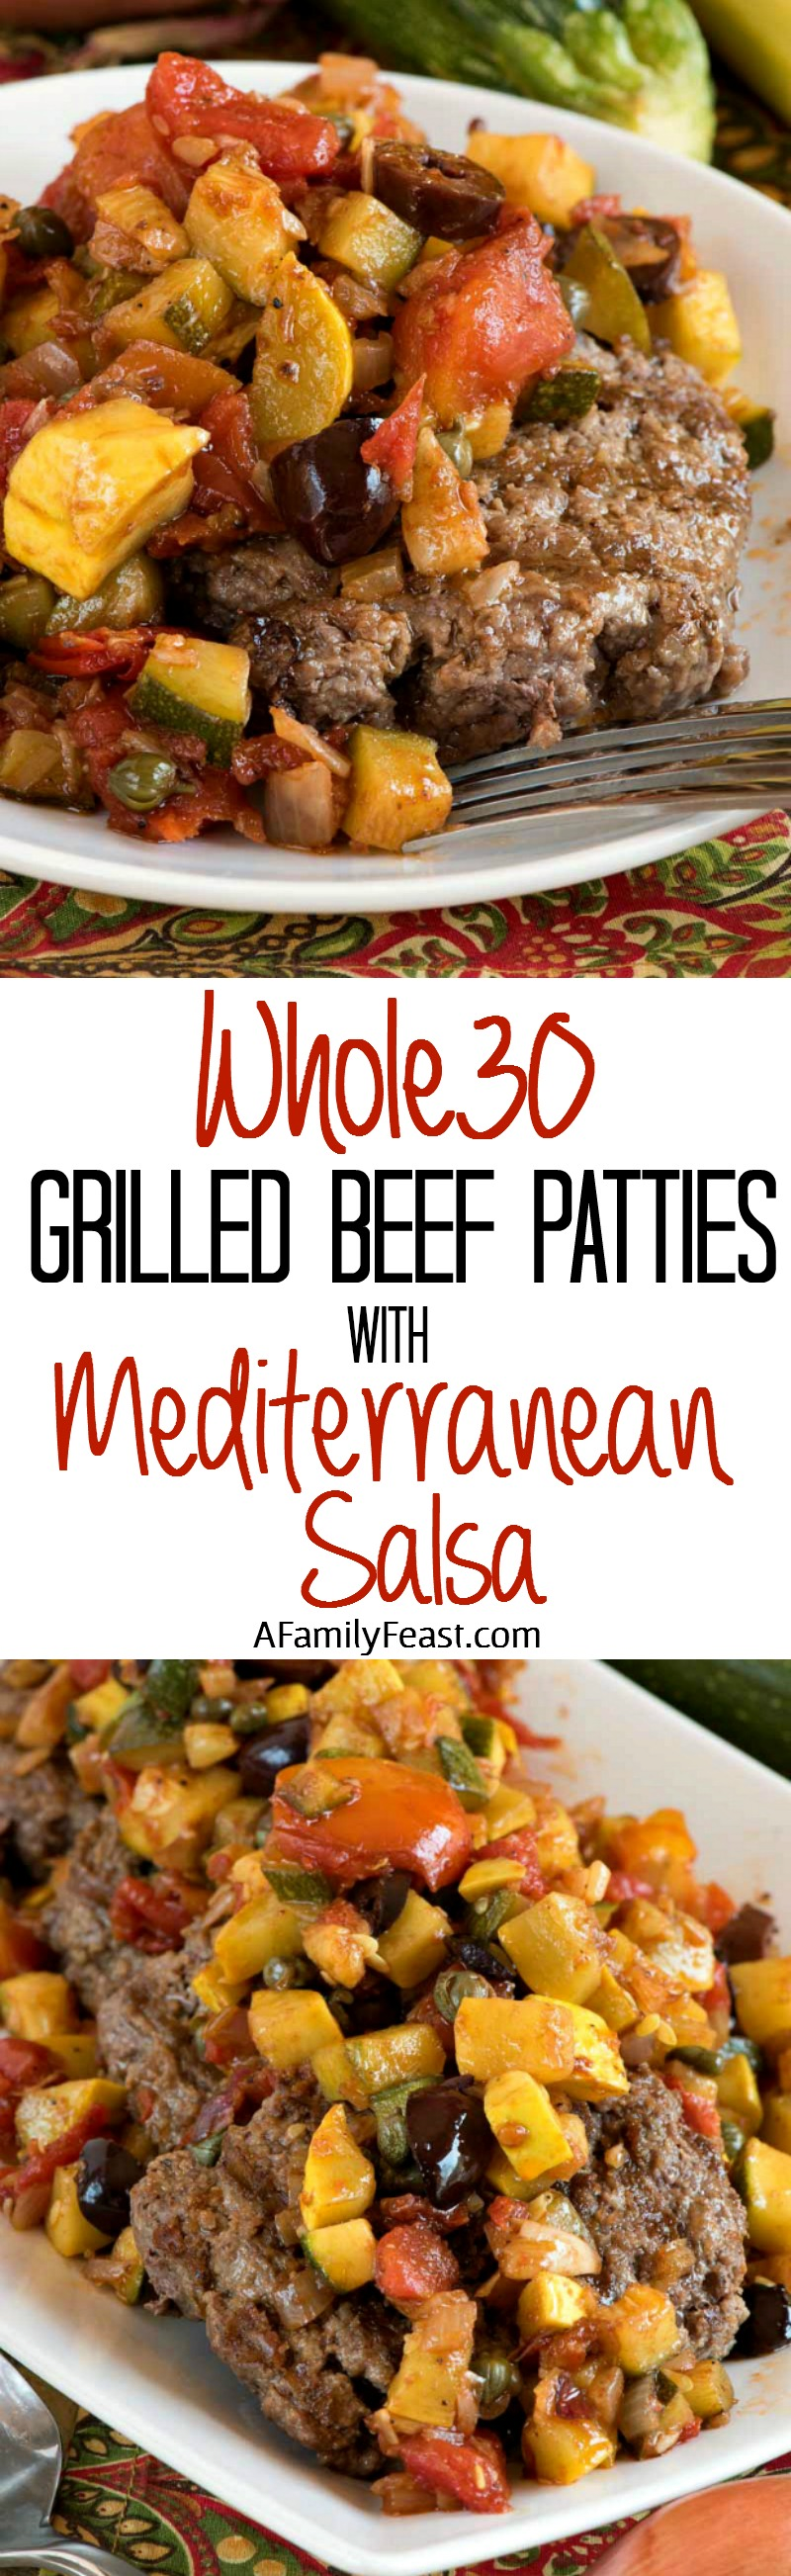 Grilled Beef Patties with Mediterranean Salsa (Whole30) - Burgers topped with a zesty, flavorful vegetable salsa. You'll love this even if you aren't on the Whole30.